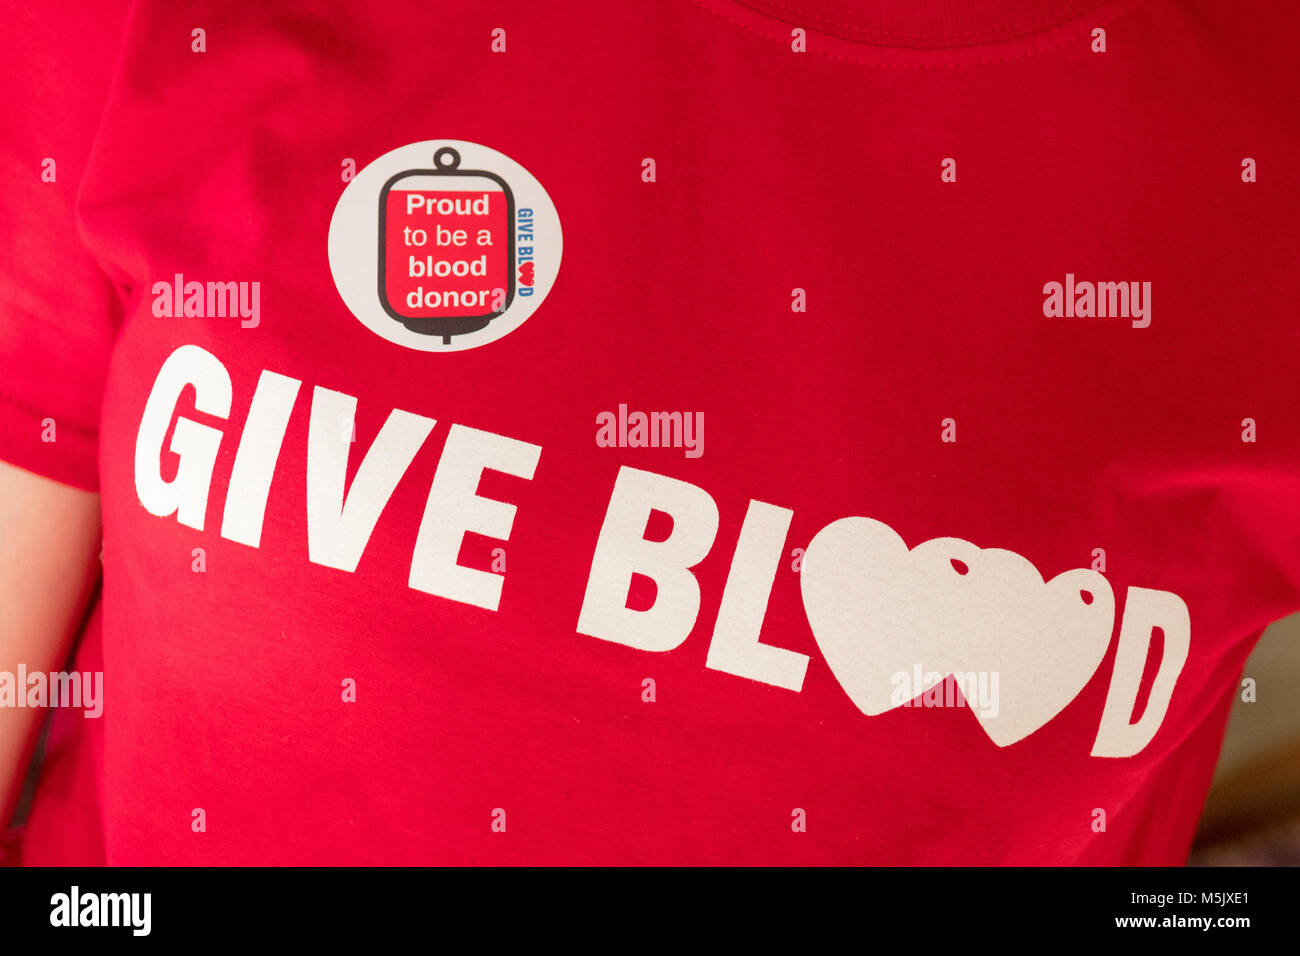 give blood t shirt and proud to be a blood donor sticker - UK - Stock Image